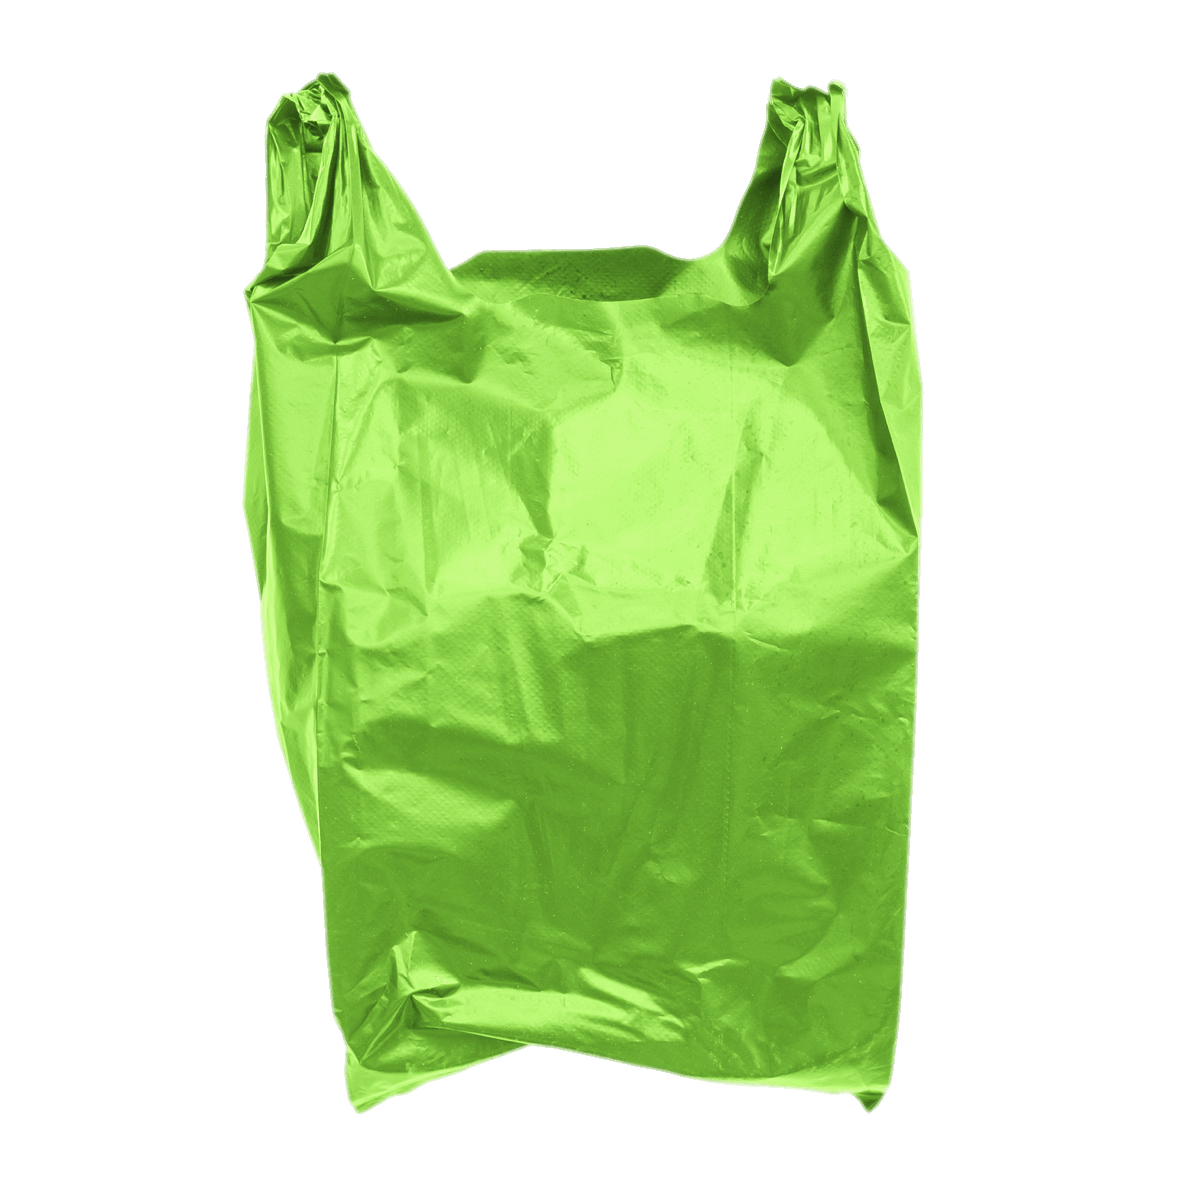 Plastic Bag Green transparent PNG.